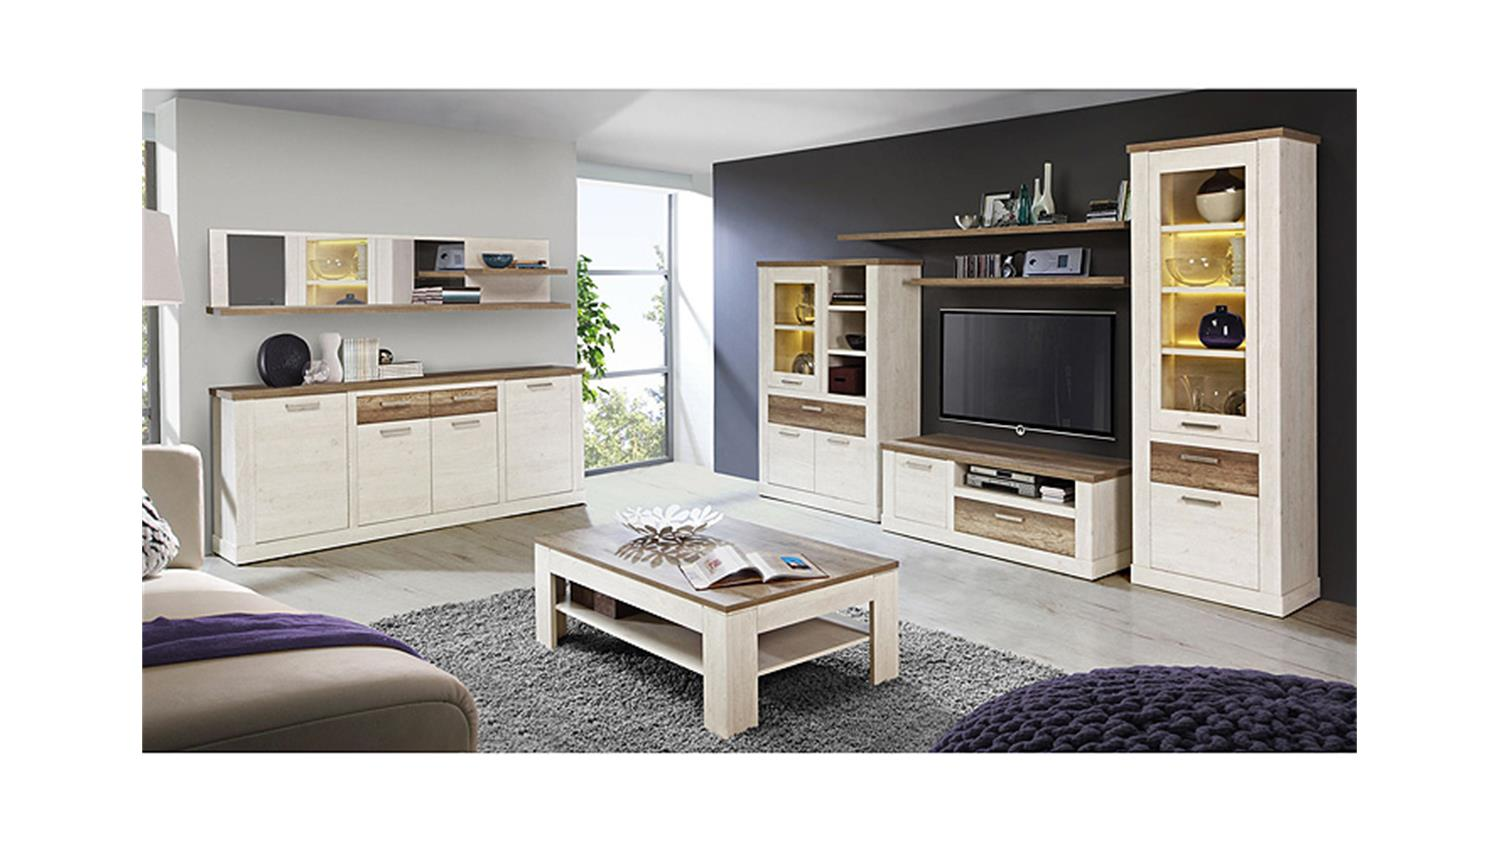 wandregal duro wandboard paneel pinie wei eiche antik. Black Bedroom Furniture Sets. Home Design Ideas